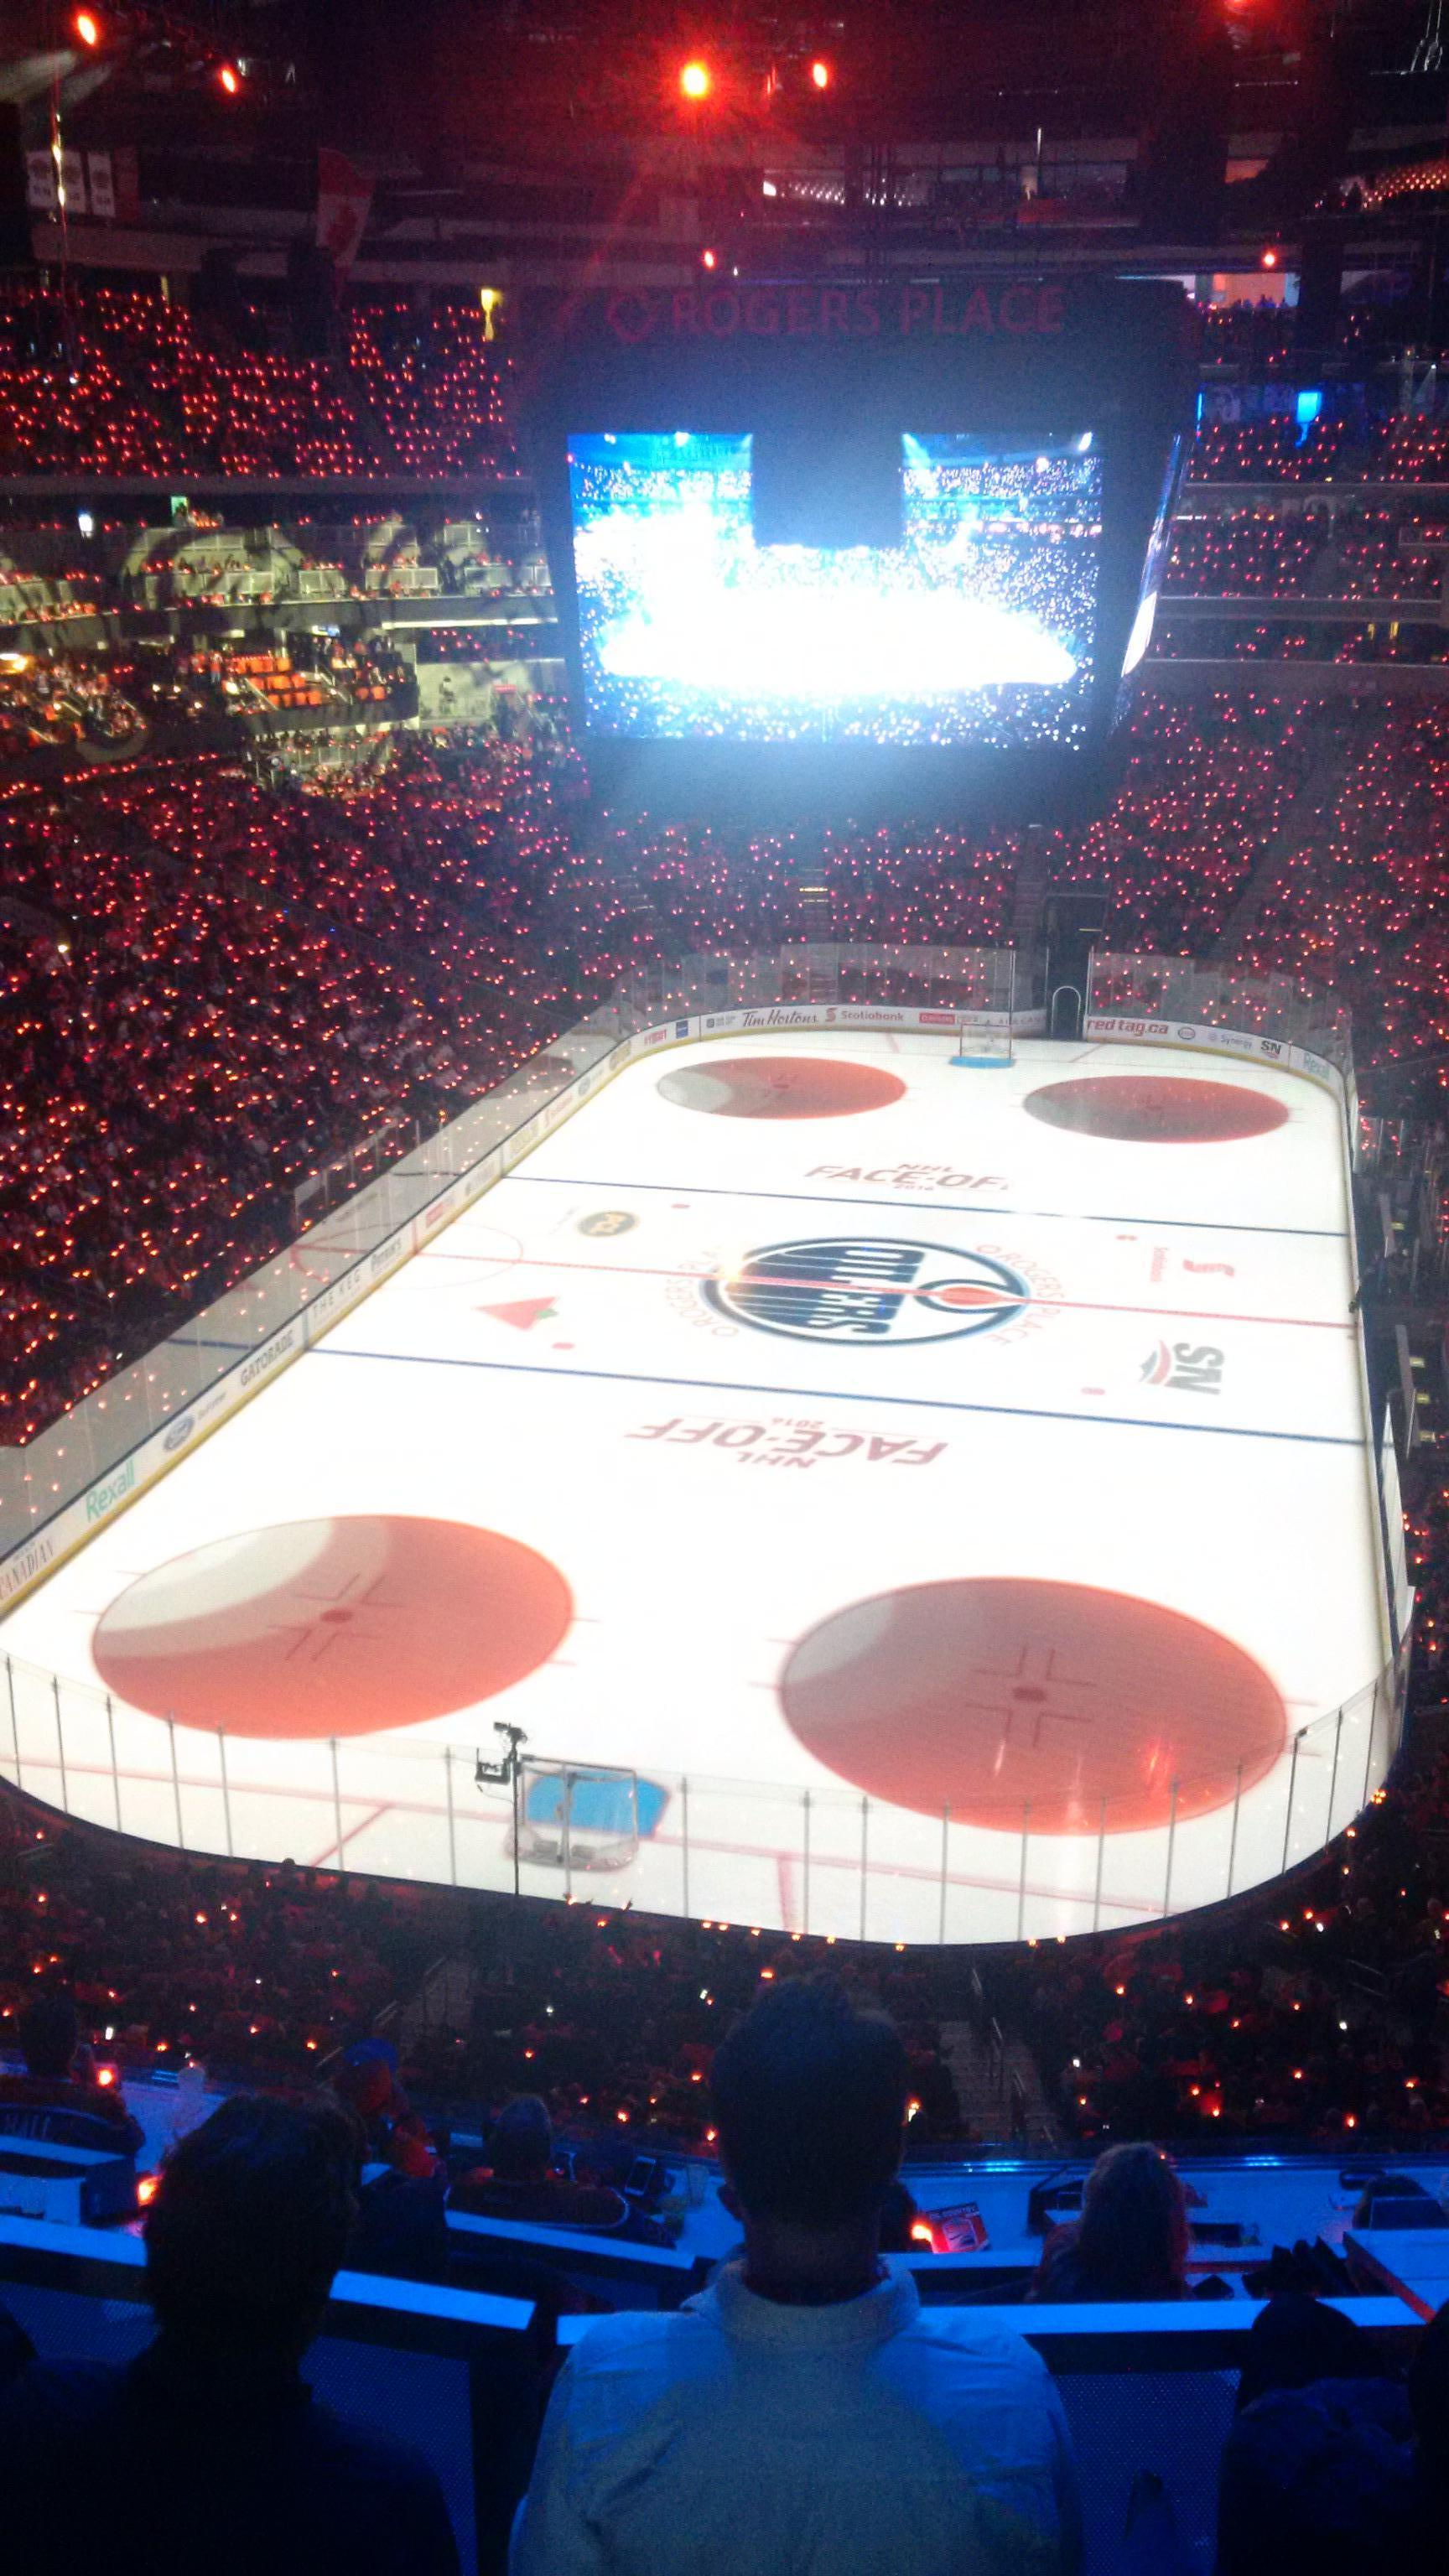 Rogers Place Section 210 Row 1 Seat 8